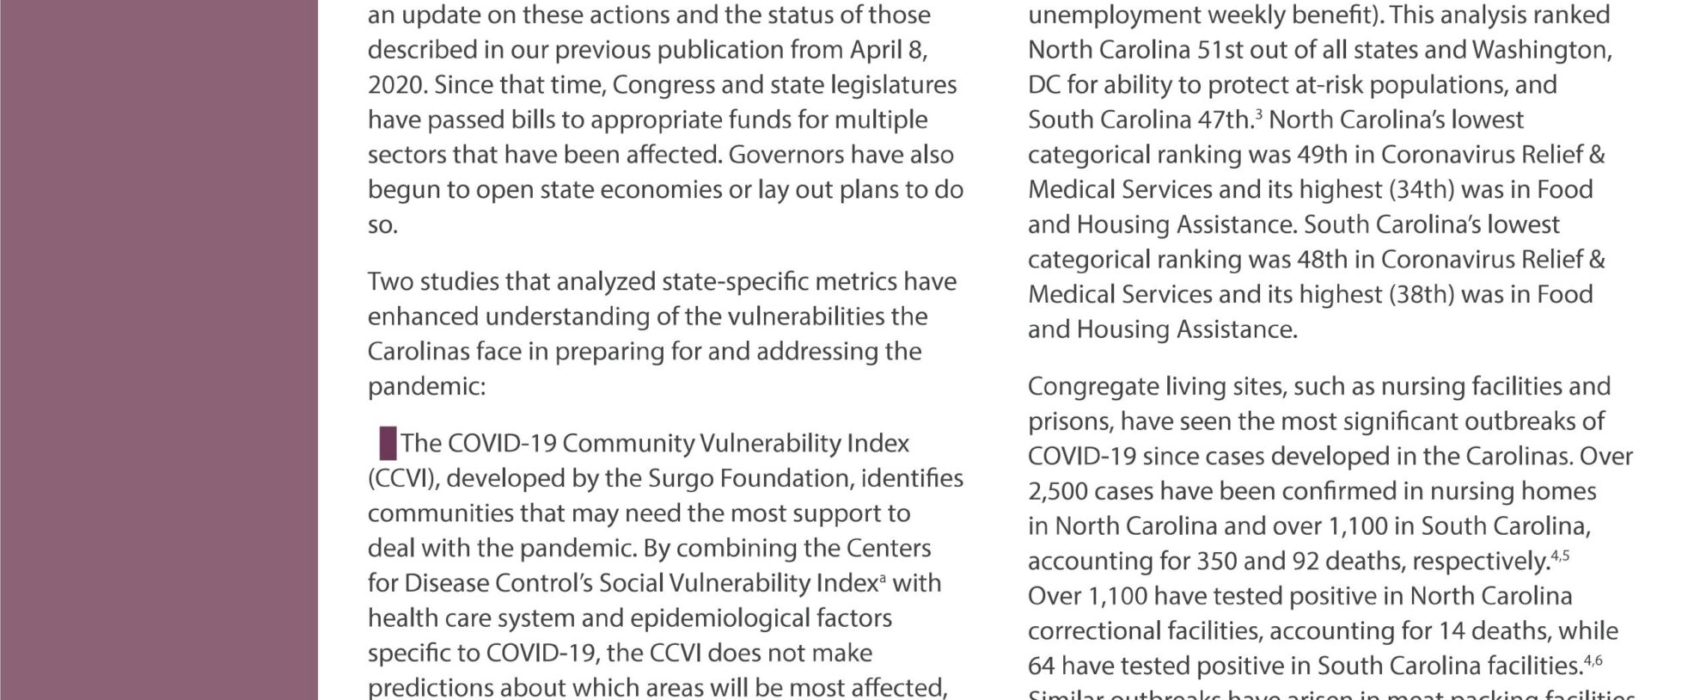 COVID-19 and the Carolinas Part II: State Responses and Federal Legislation to Address the Crisis